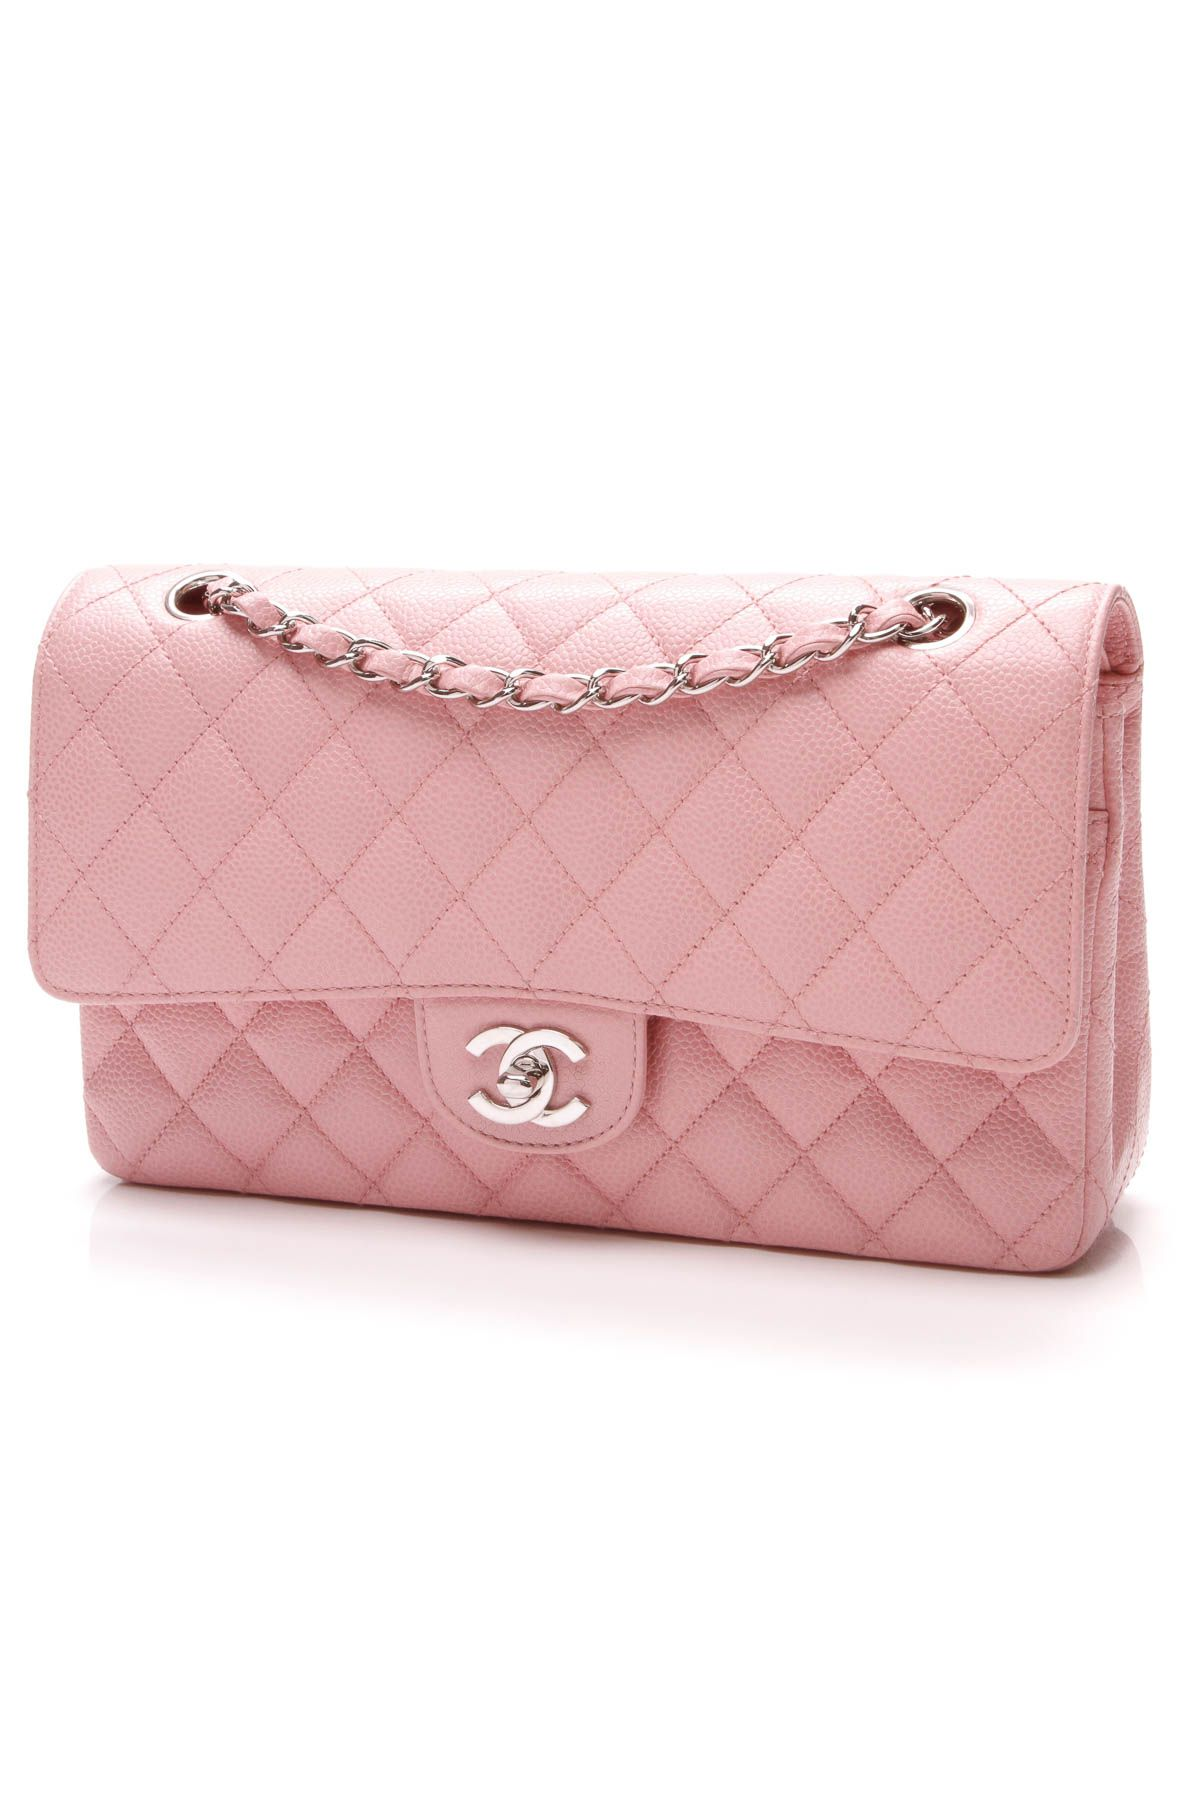 Double Flap Bag Medium Pink Caviar